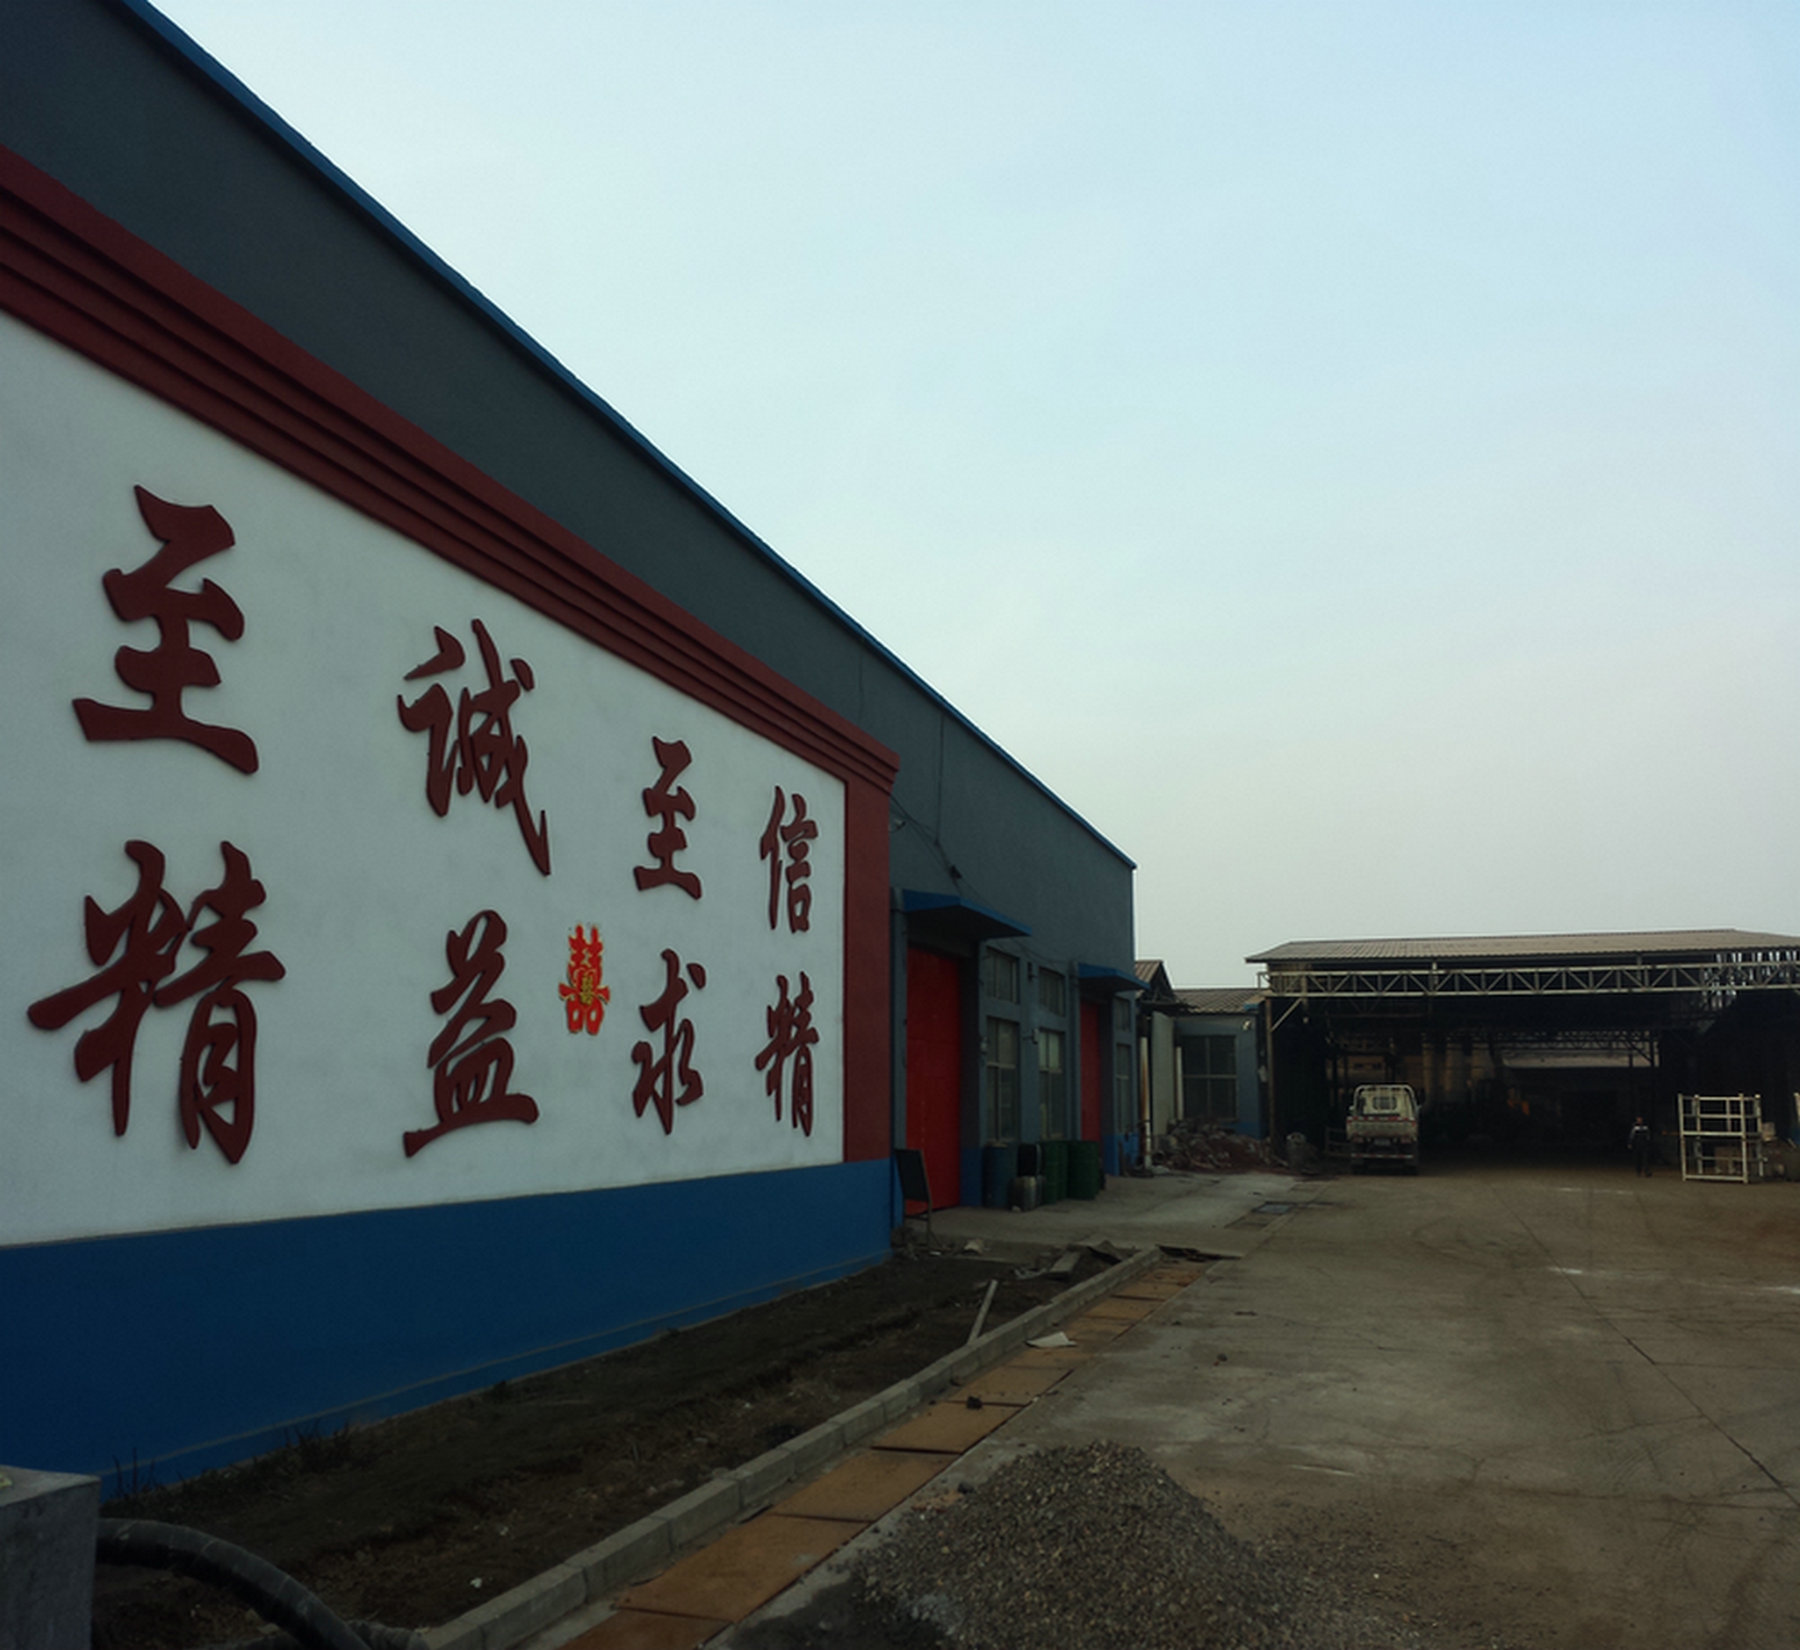 The pictures of the factory